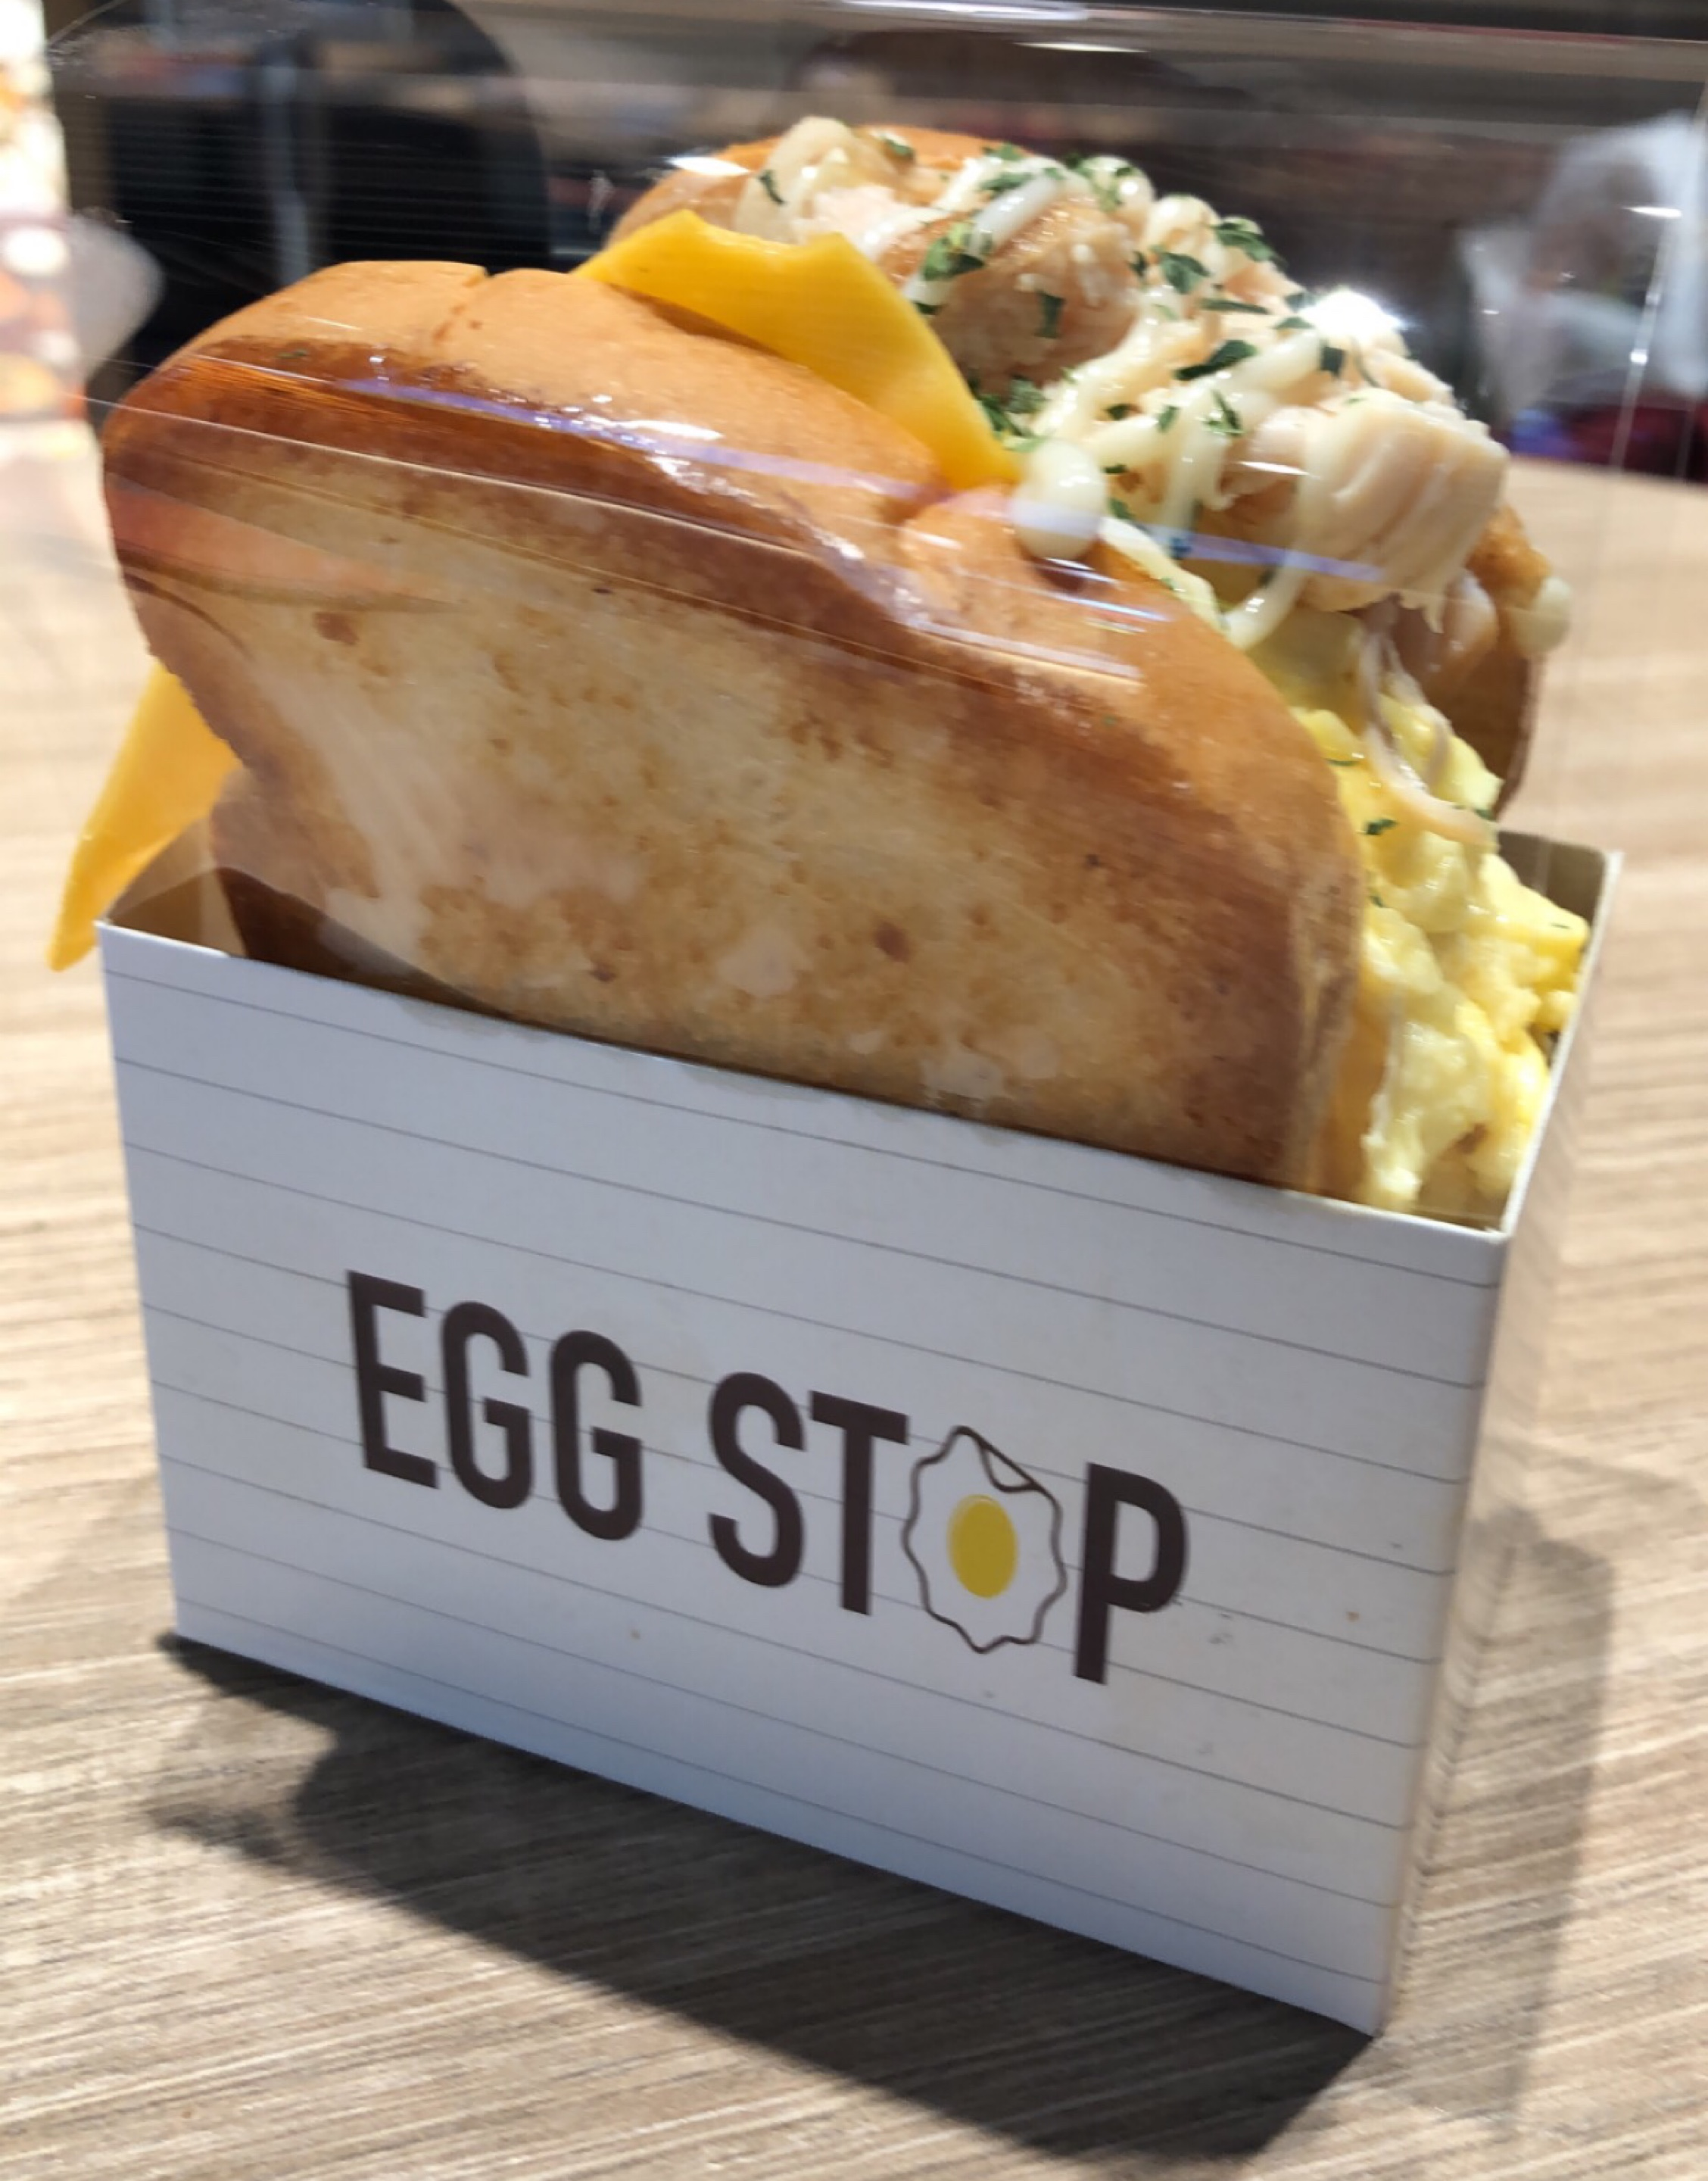 Egg Stop